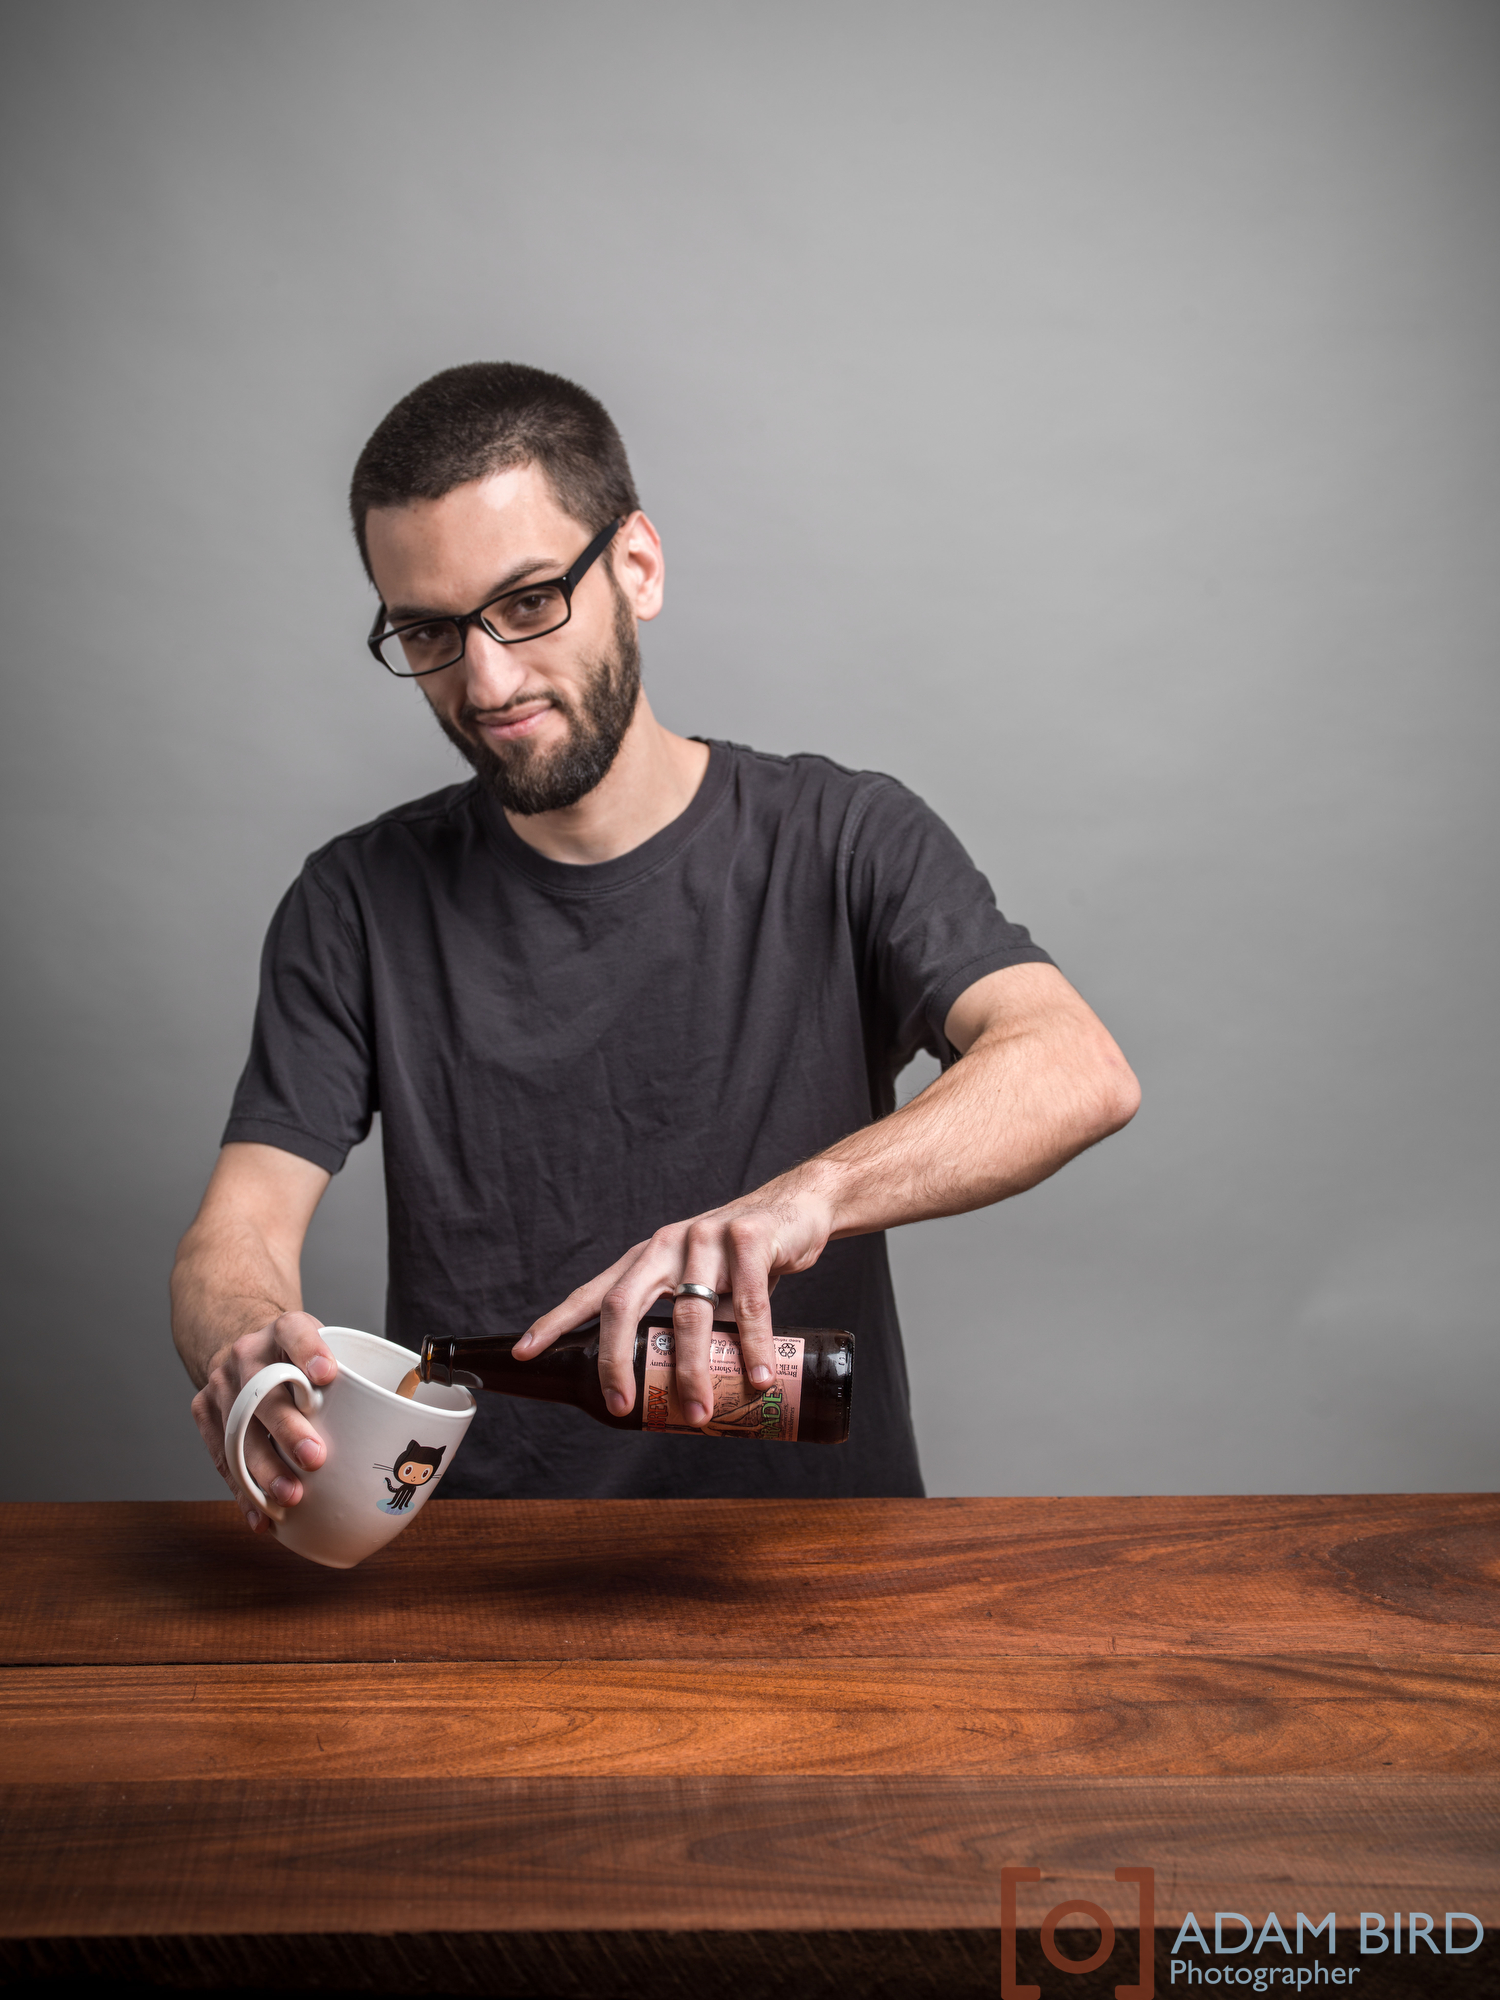 Tyler Steimle of K-Motion Design pouring a beer